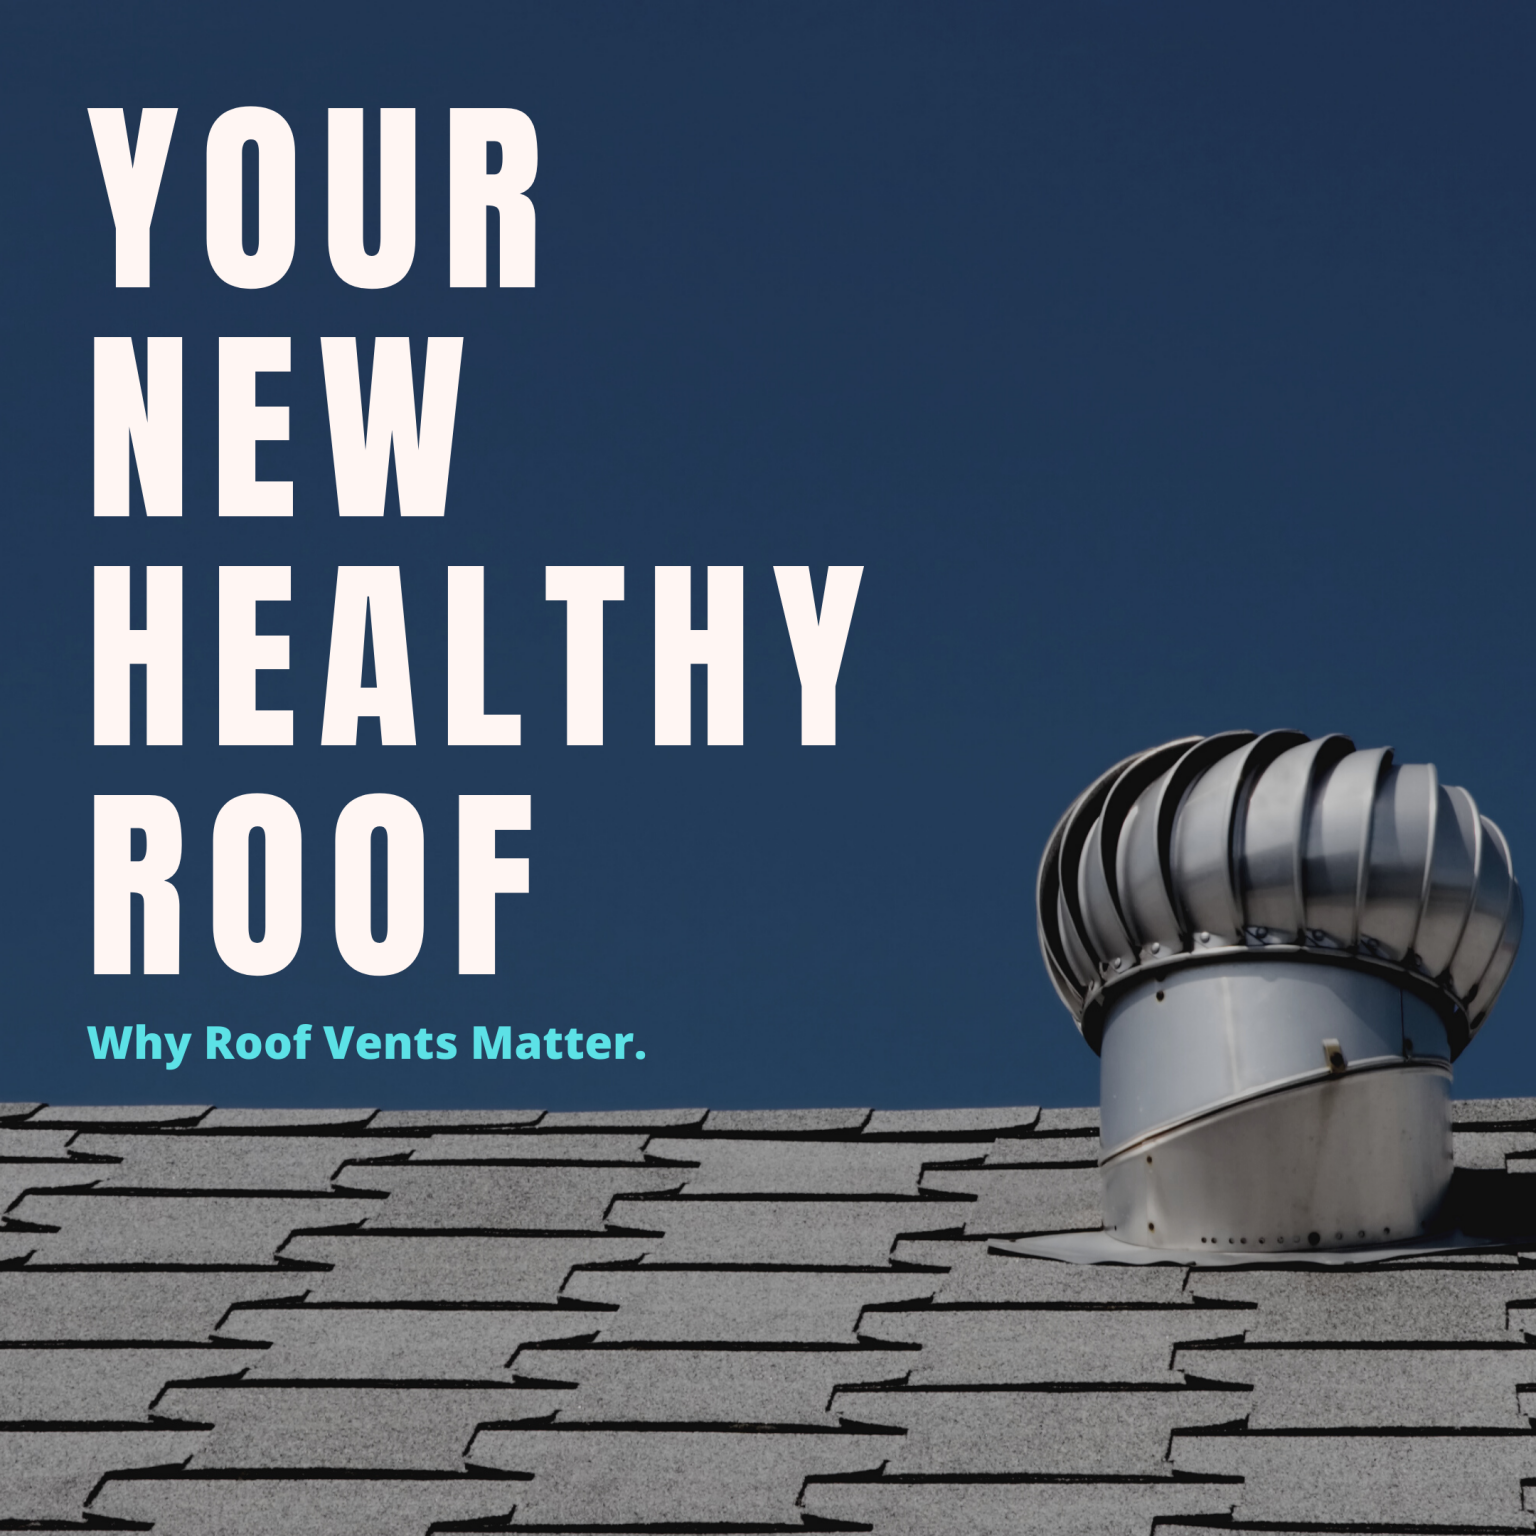 Roofing Ventilation: The Secret to A Healthy Roof